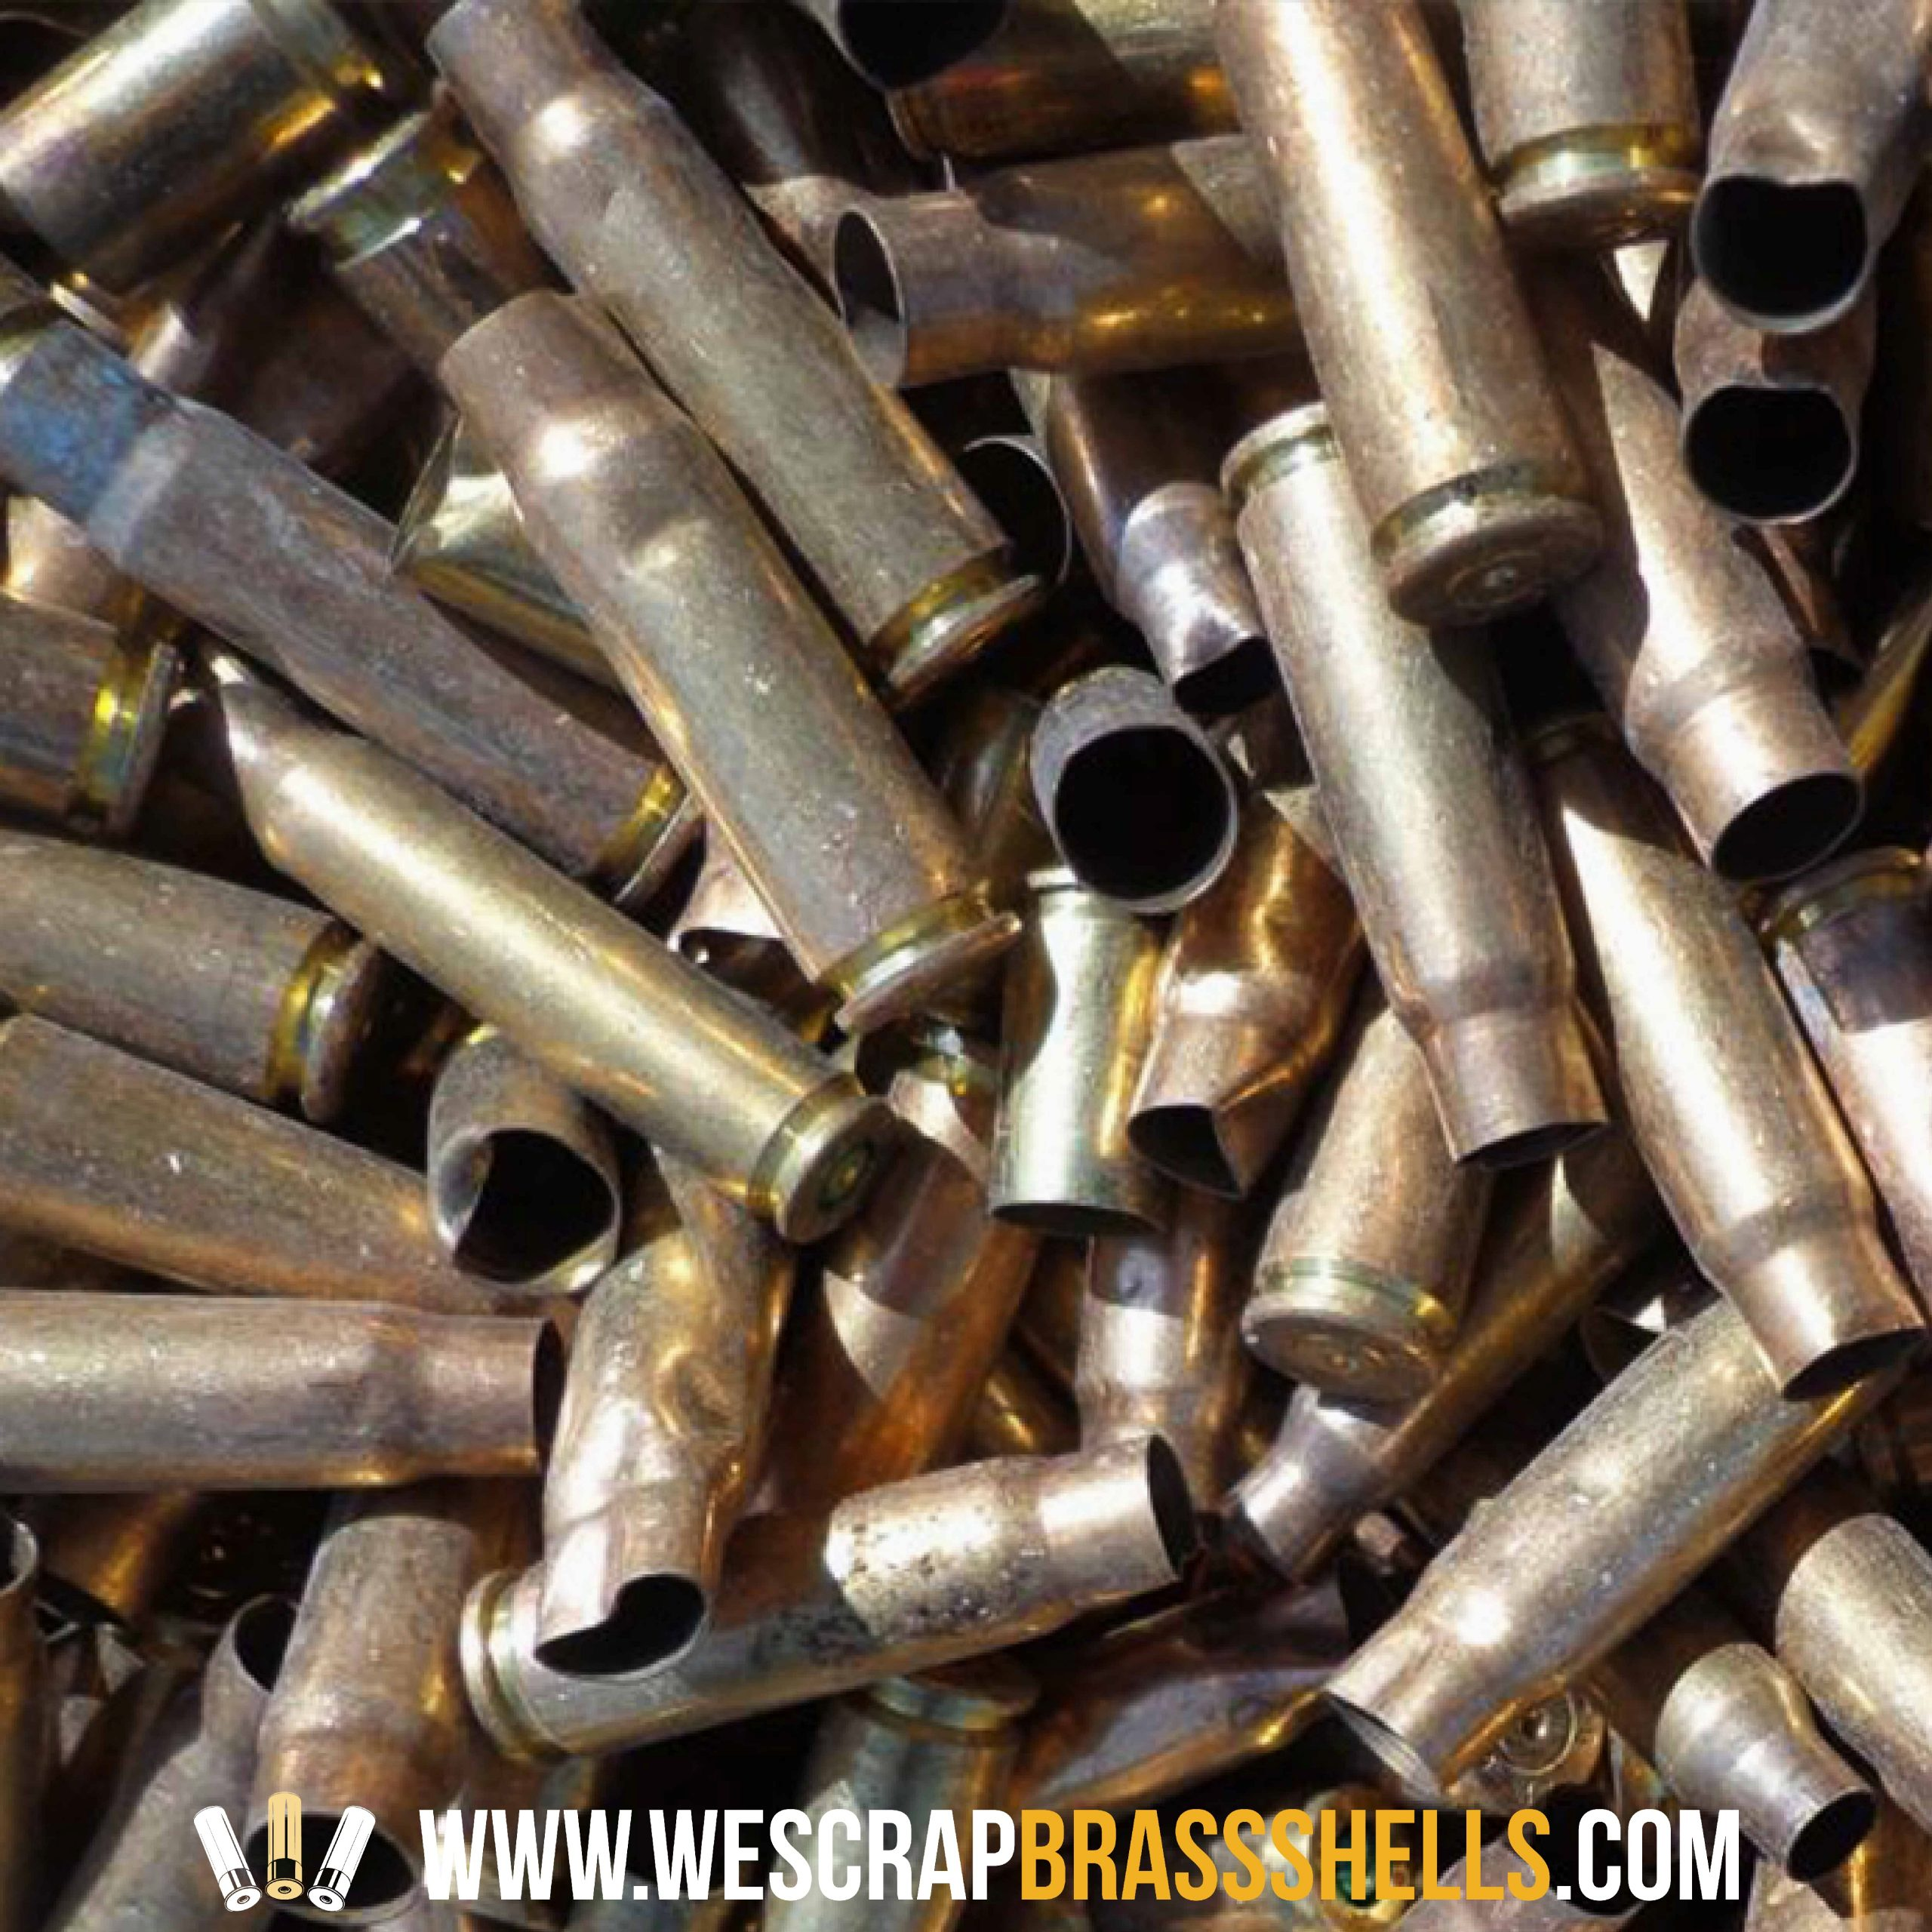 Recycling Brass Shell Casings